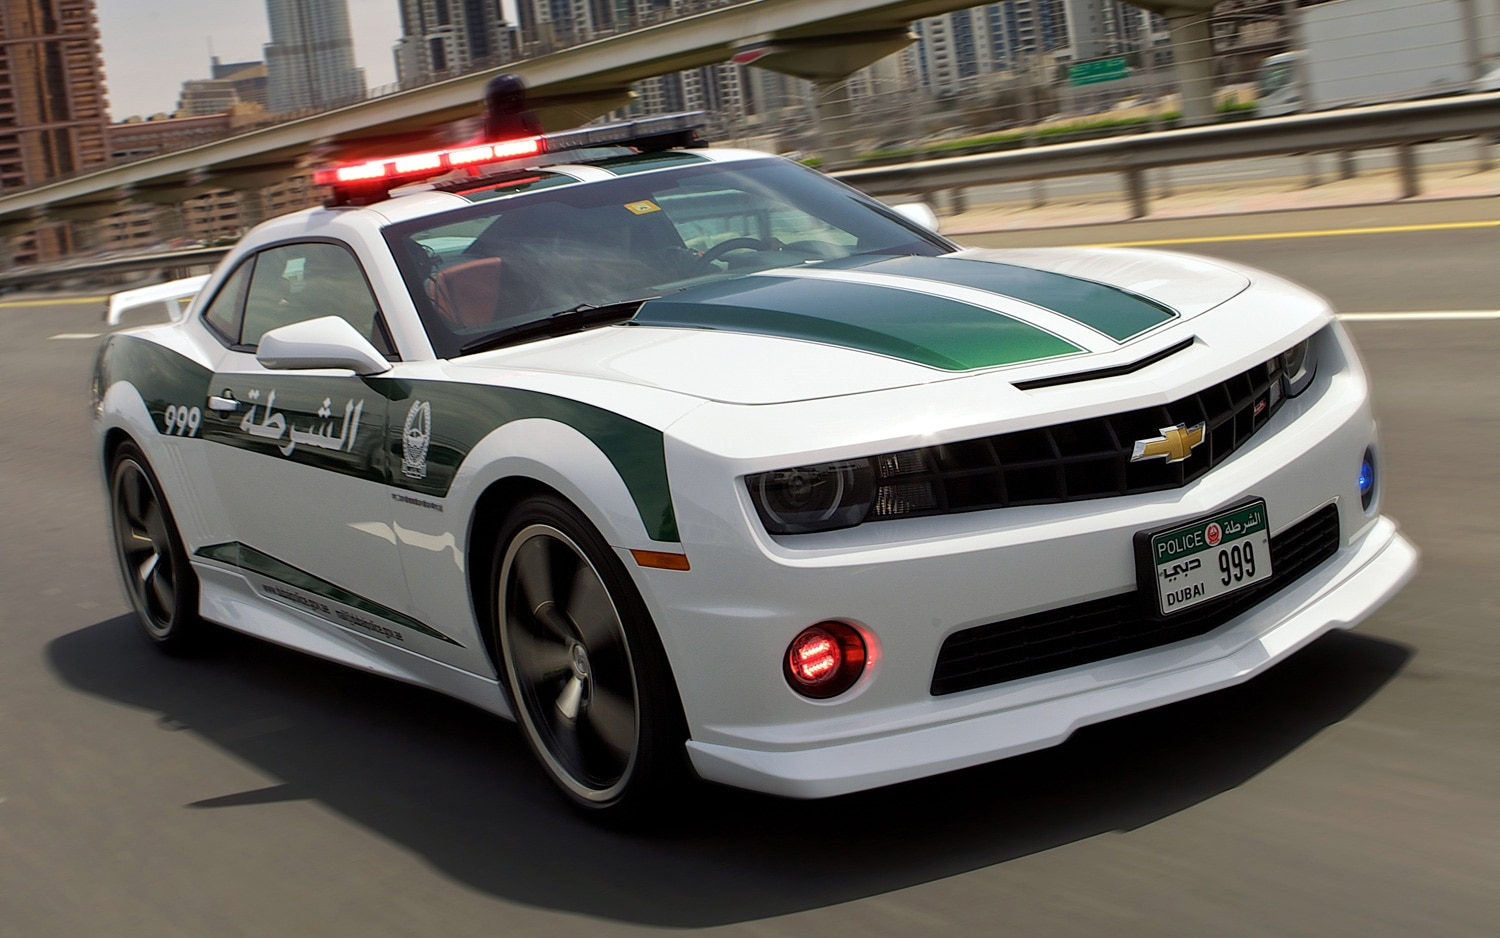 Chevrolet Camaro SS Dubai Police Car Front Three Quarters View1